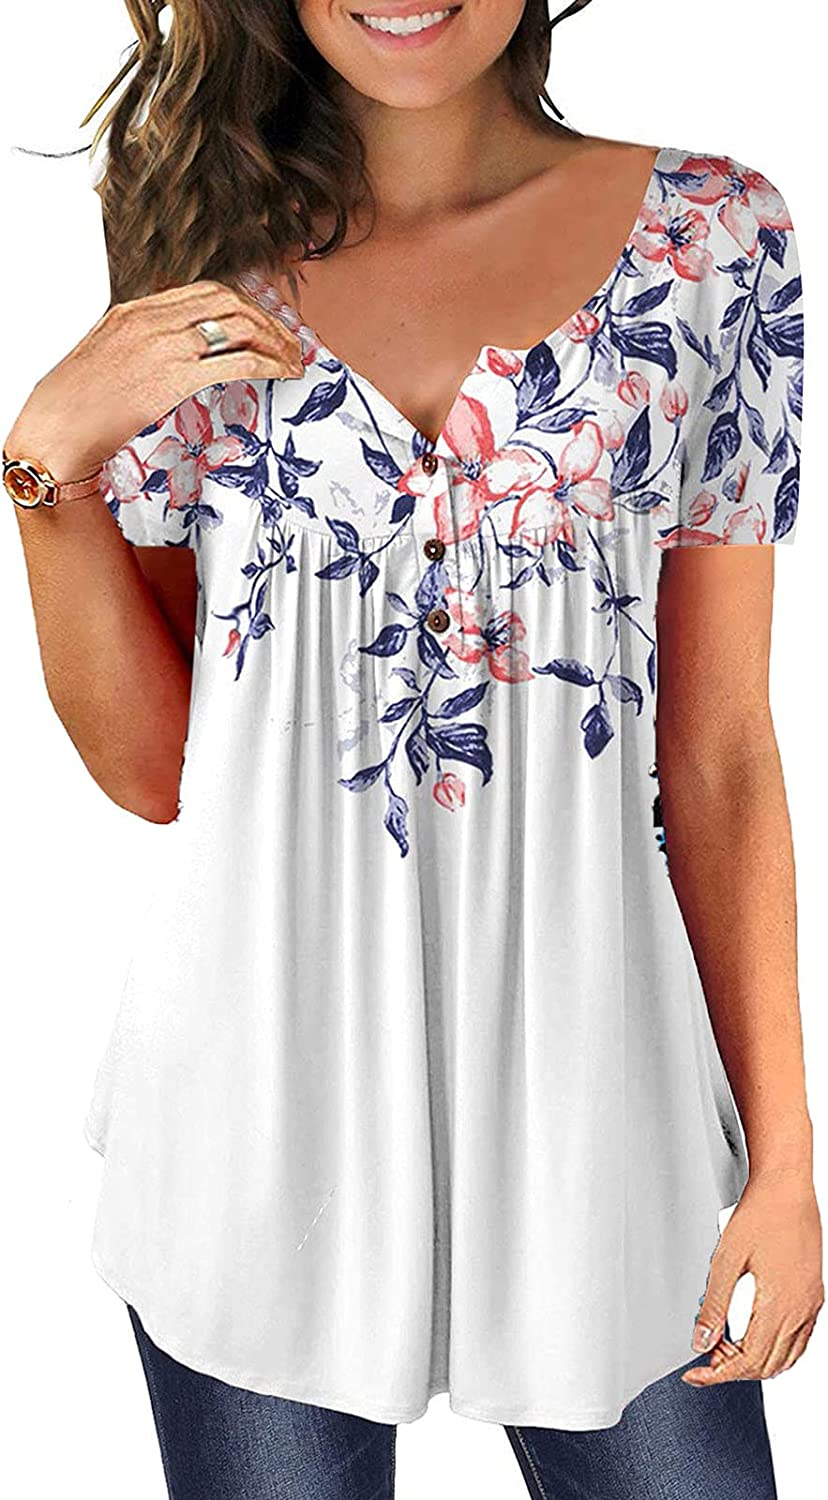 Short Sleeve Blouses for Women Dressy Flowy Tops Button Down Tunic Shirts Fashion Casual Loose Scoop Neck Ruched Tees